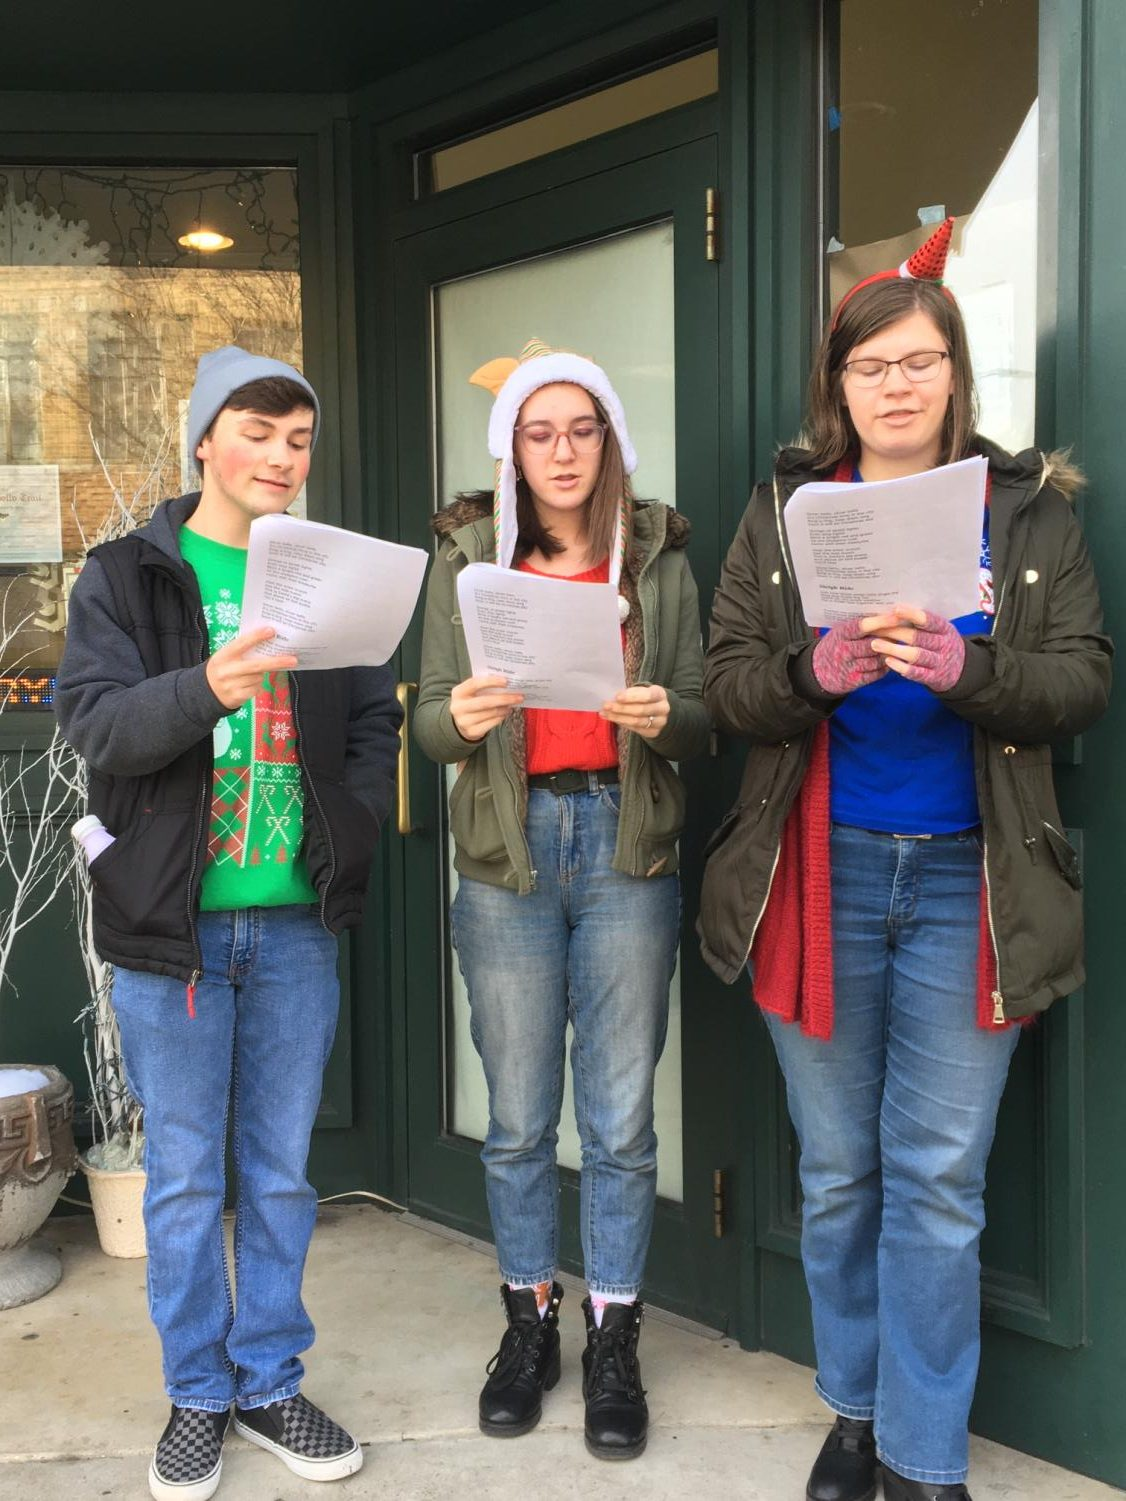 Junior Jake Montgomery, sophomore Alyssa Sheriff and Junior Julia Malek sing Christmas carols in front of the Majestic Theatre in downtown Pottsville. The PAHS Crimson Players spent time singing for